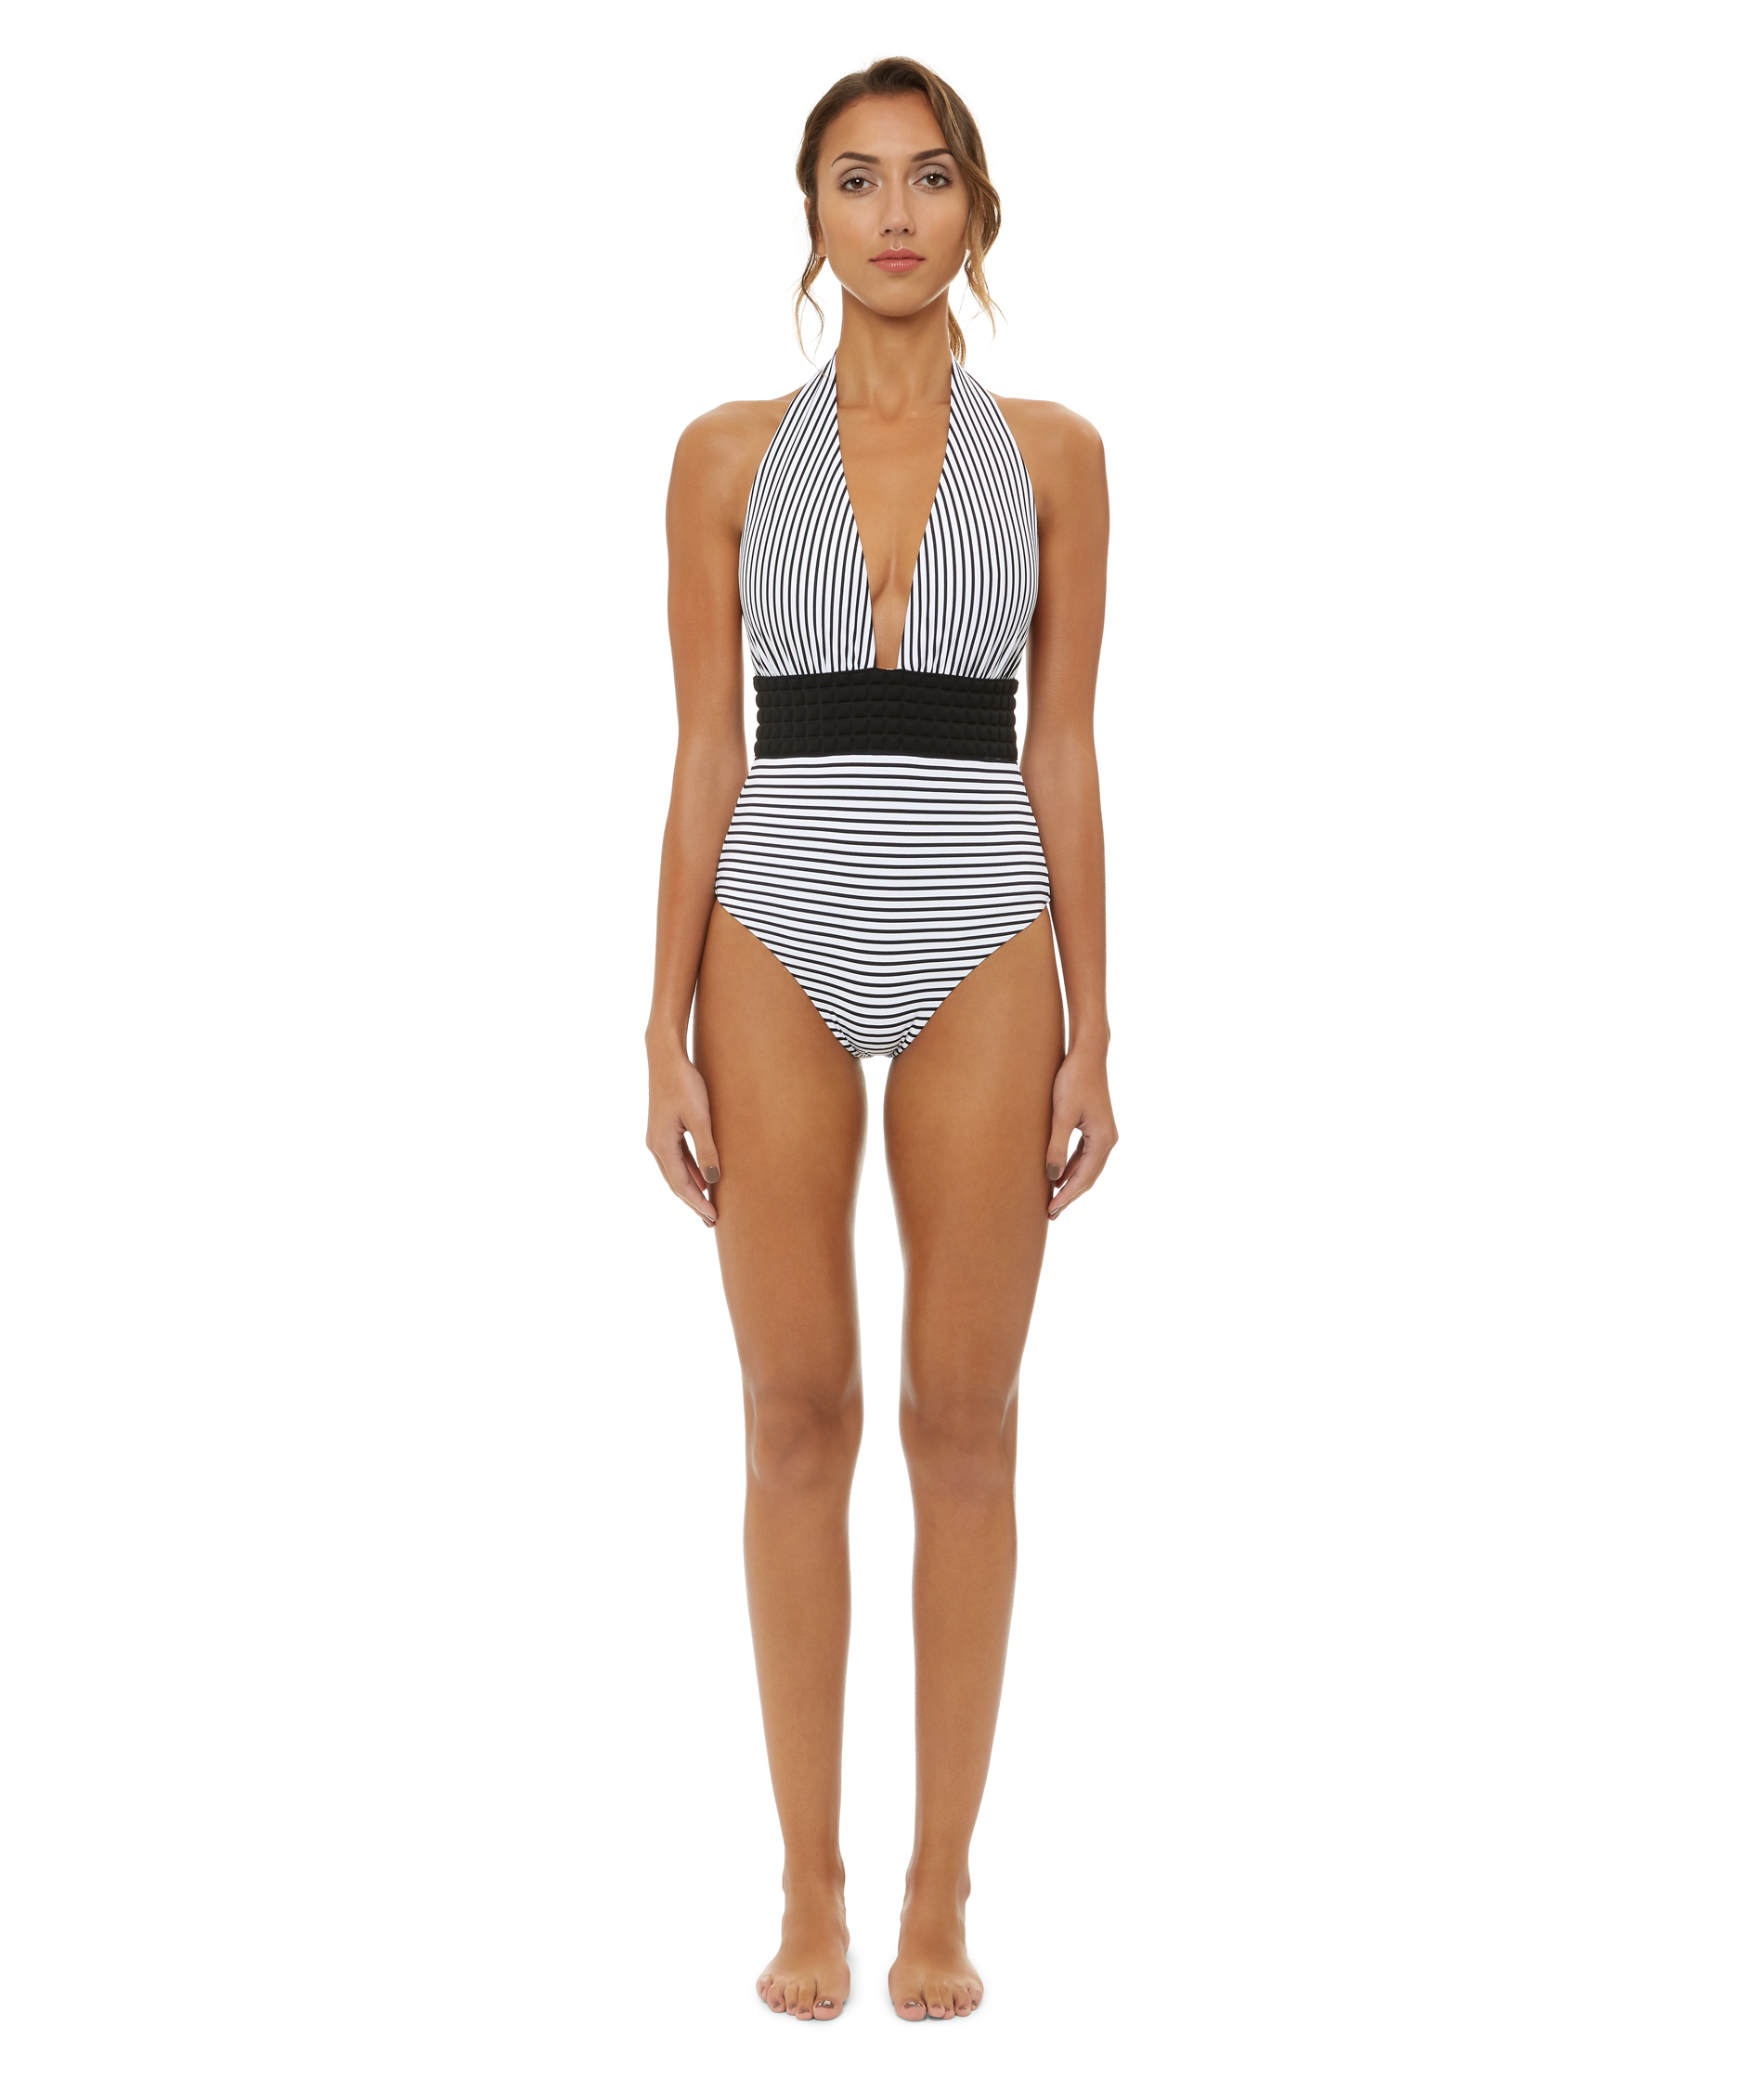 St Germain | One Piece Swimsuit